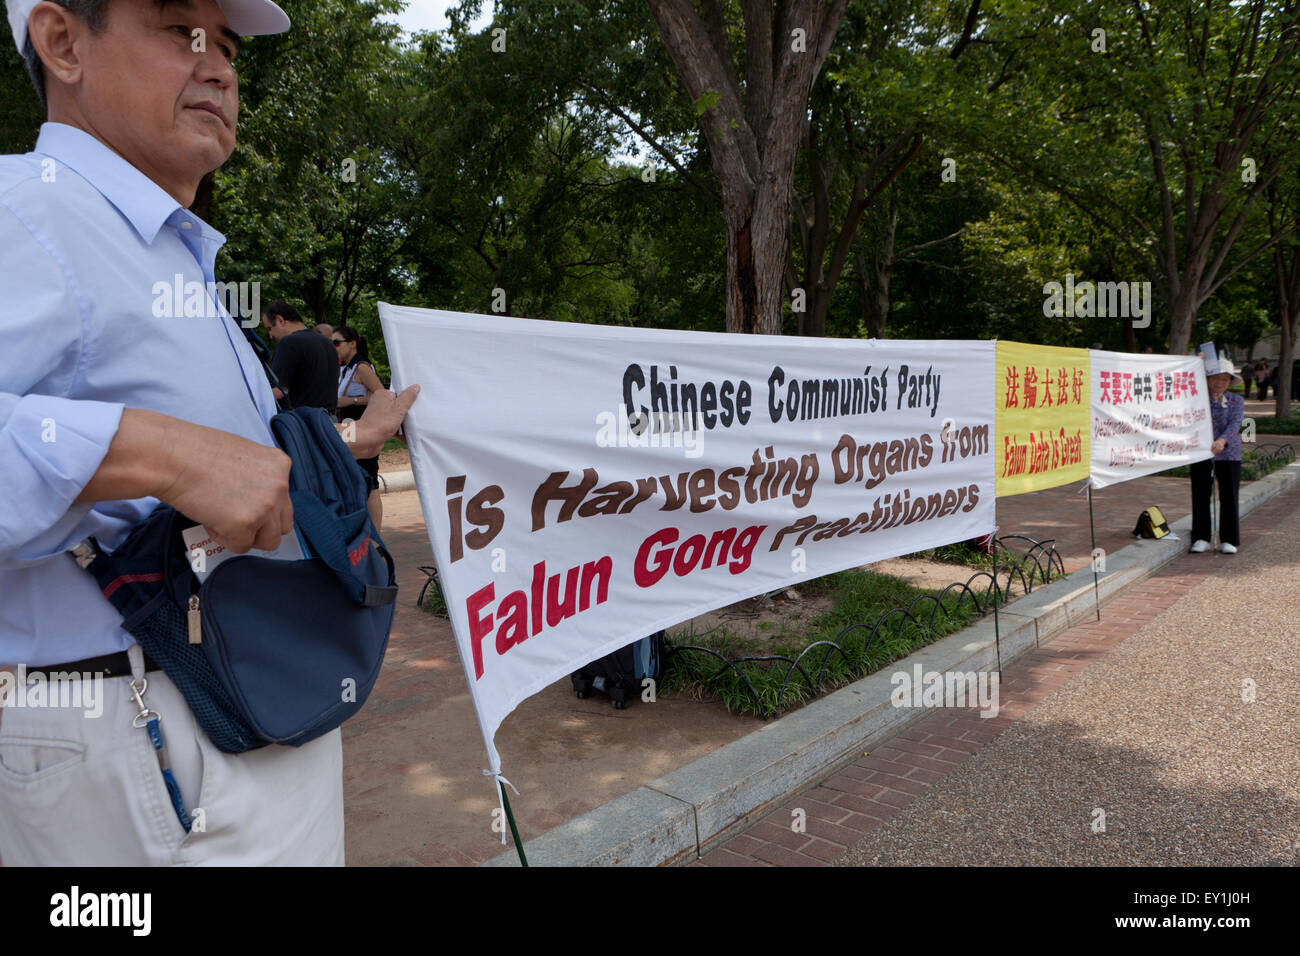 Falun Gong practitioners protesting against Chinese Communist party - Washington, DC USA - Stock Image